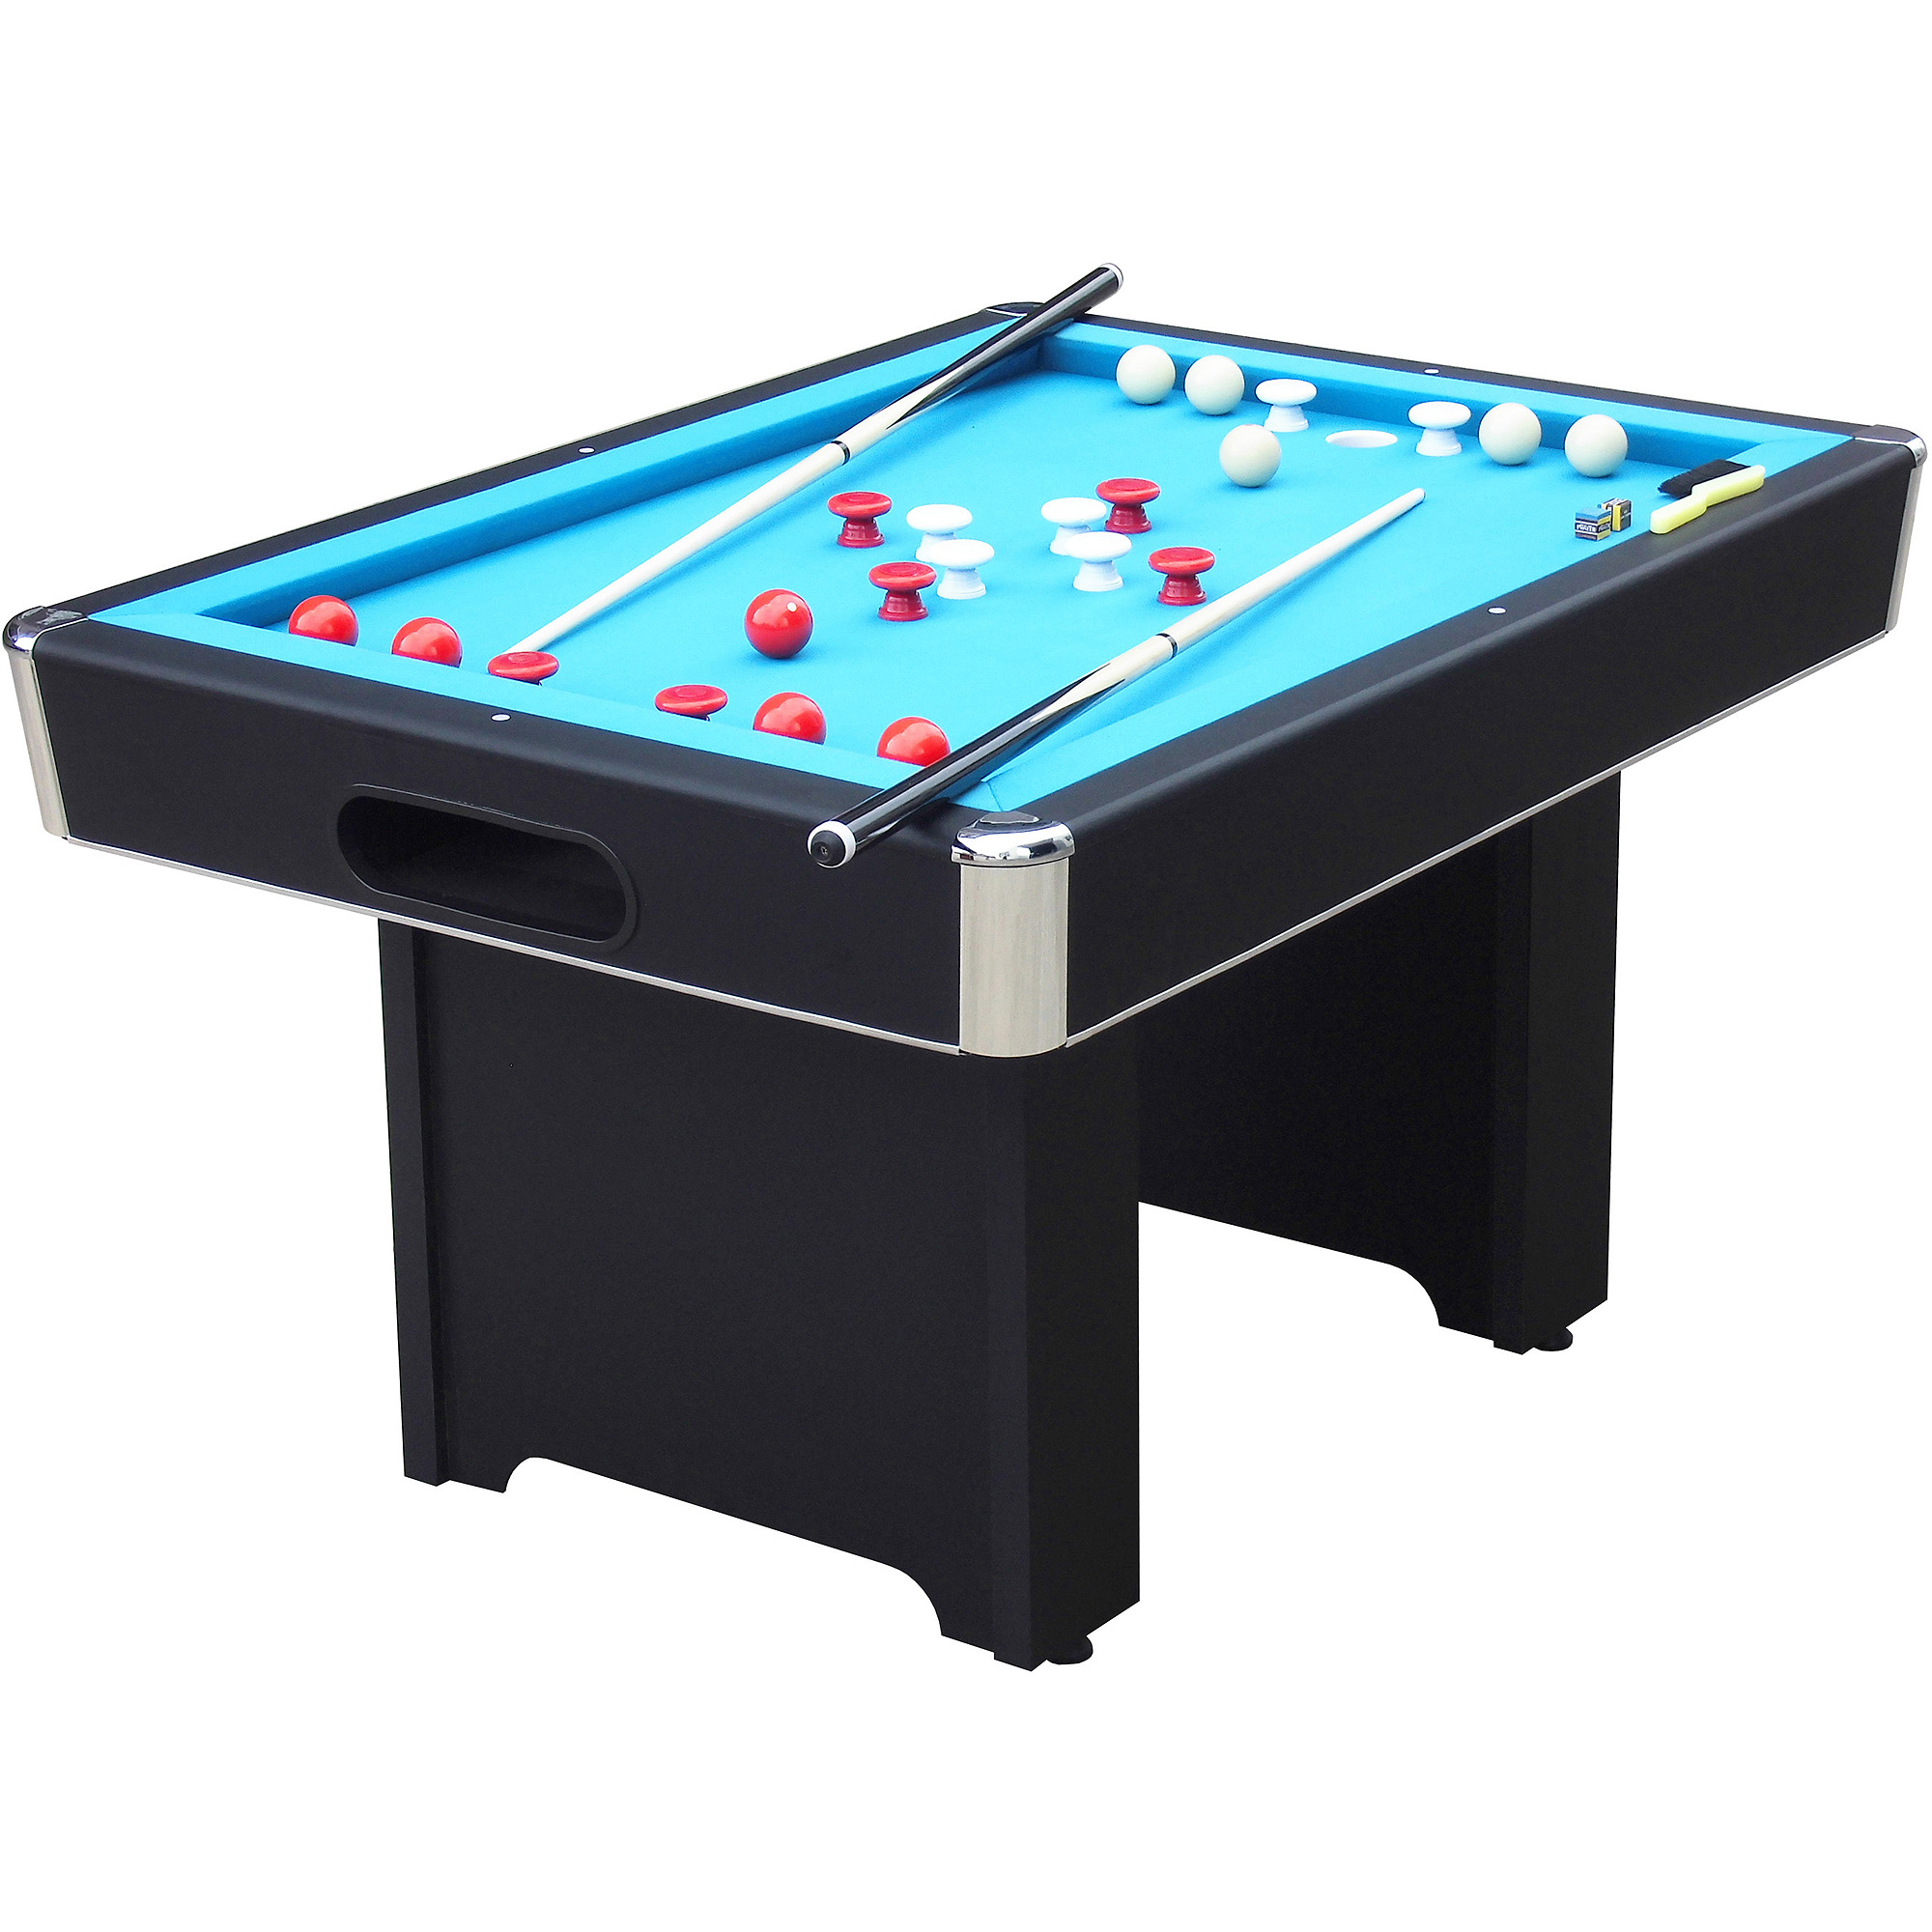 Attractive bumper pool table playcraft hartford slate black bumper 4.5u0027 pool table - walmart.com ectkrkm